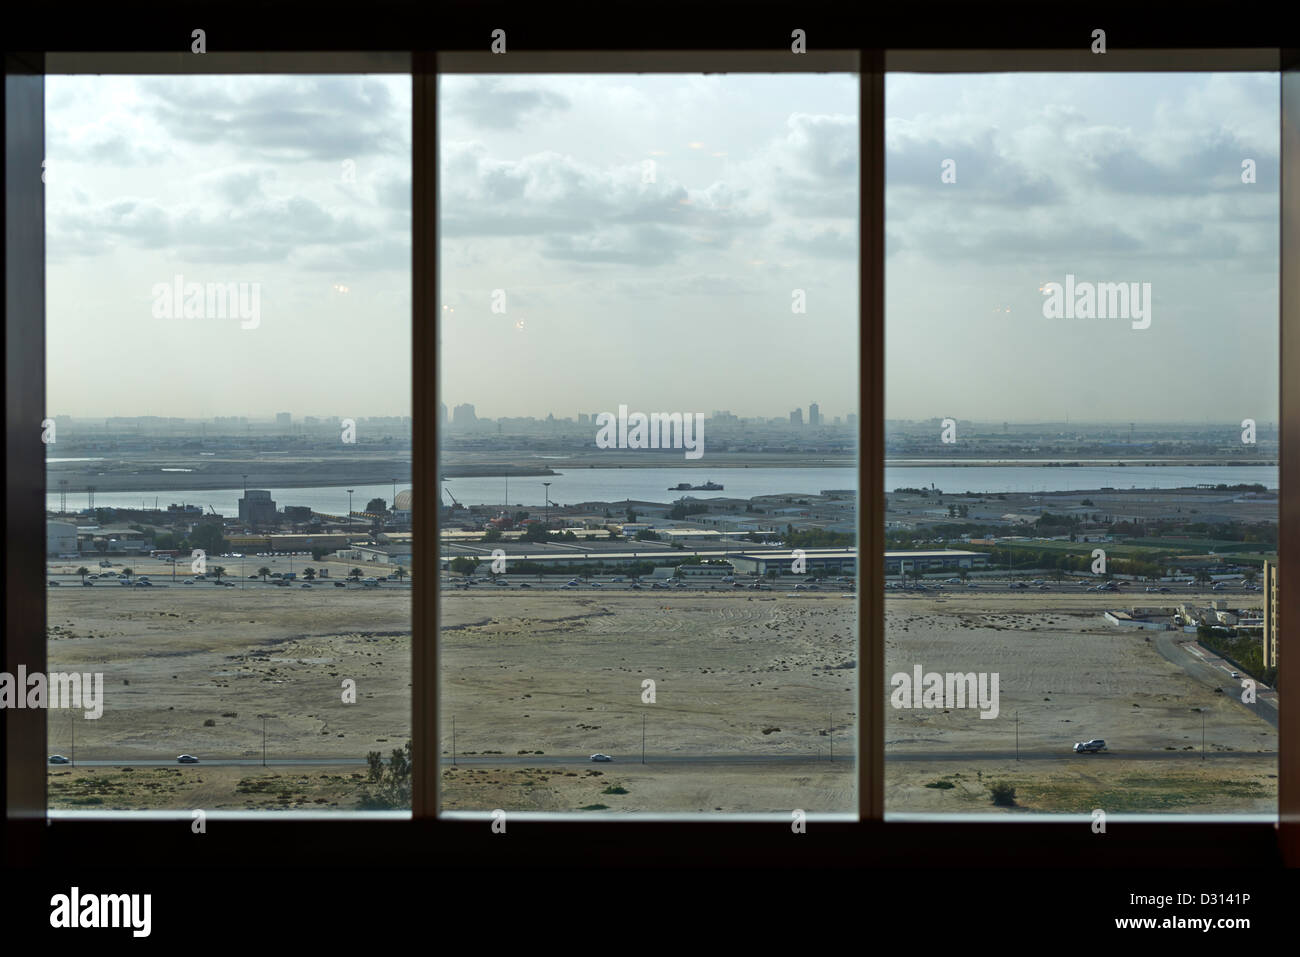 A barren field in Dubai seen through a window - Stock Image